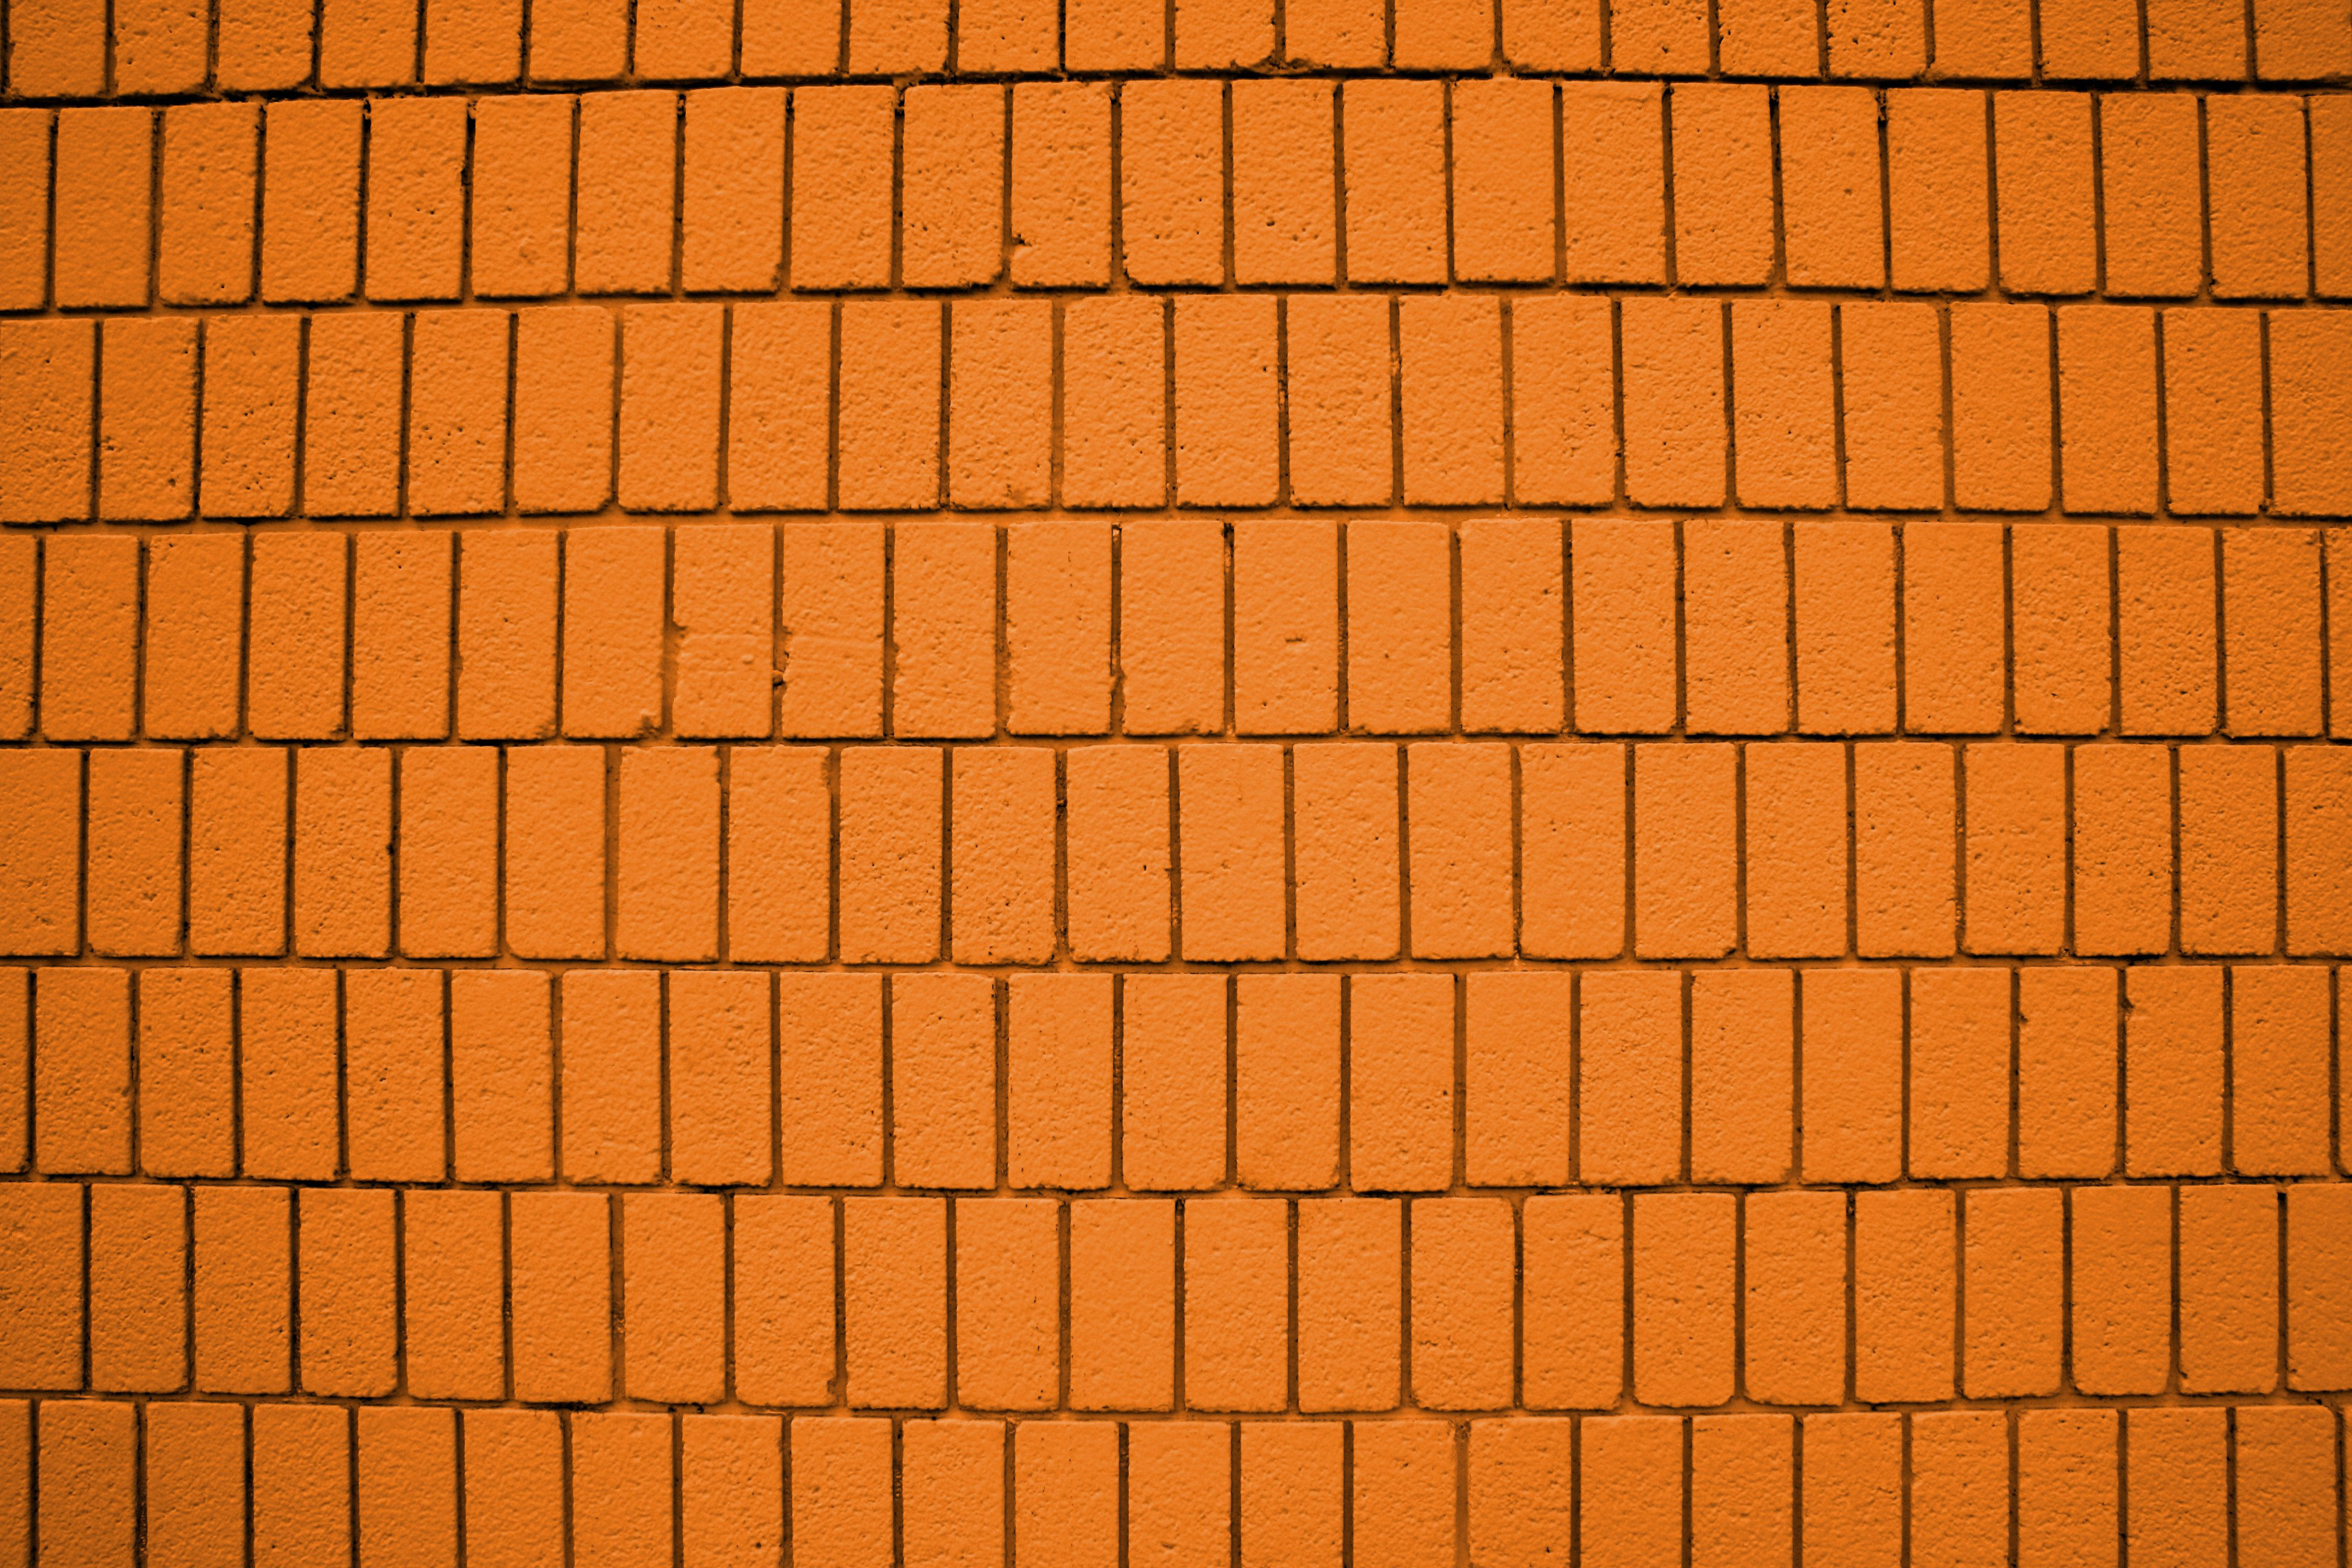 Bright orange brick wall texture with vertical bricks for Bright wallpaper for walls